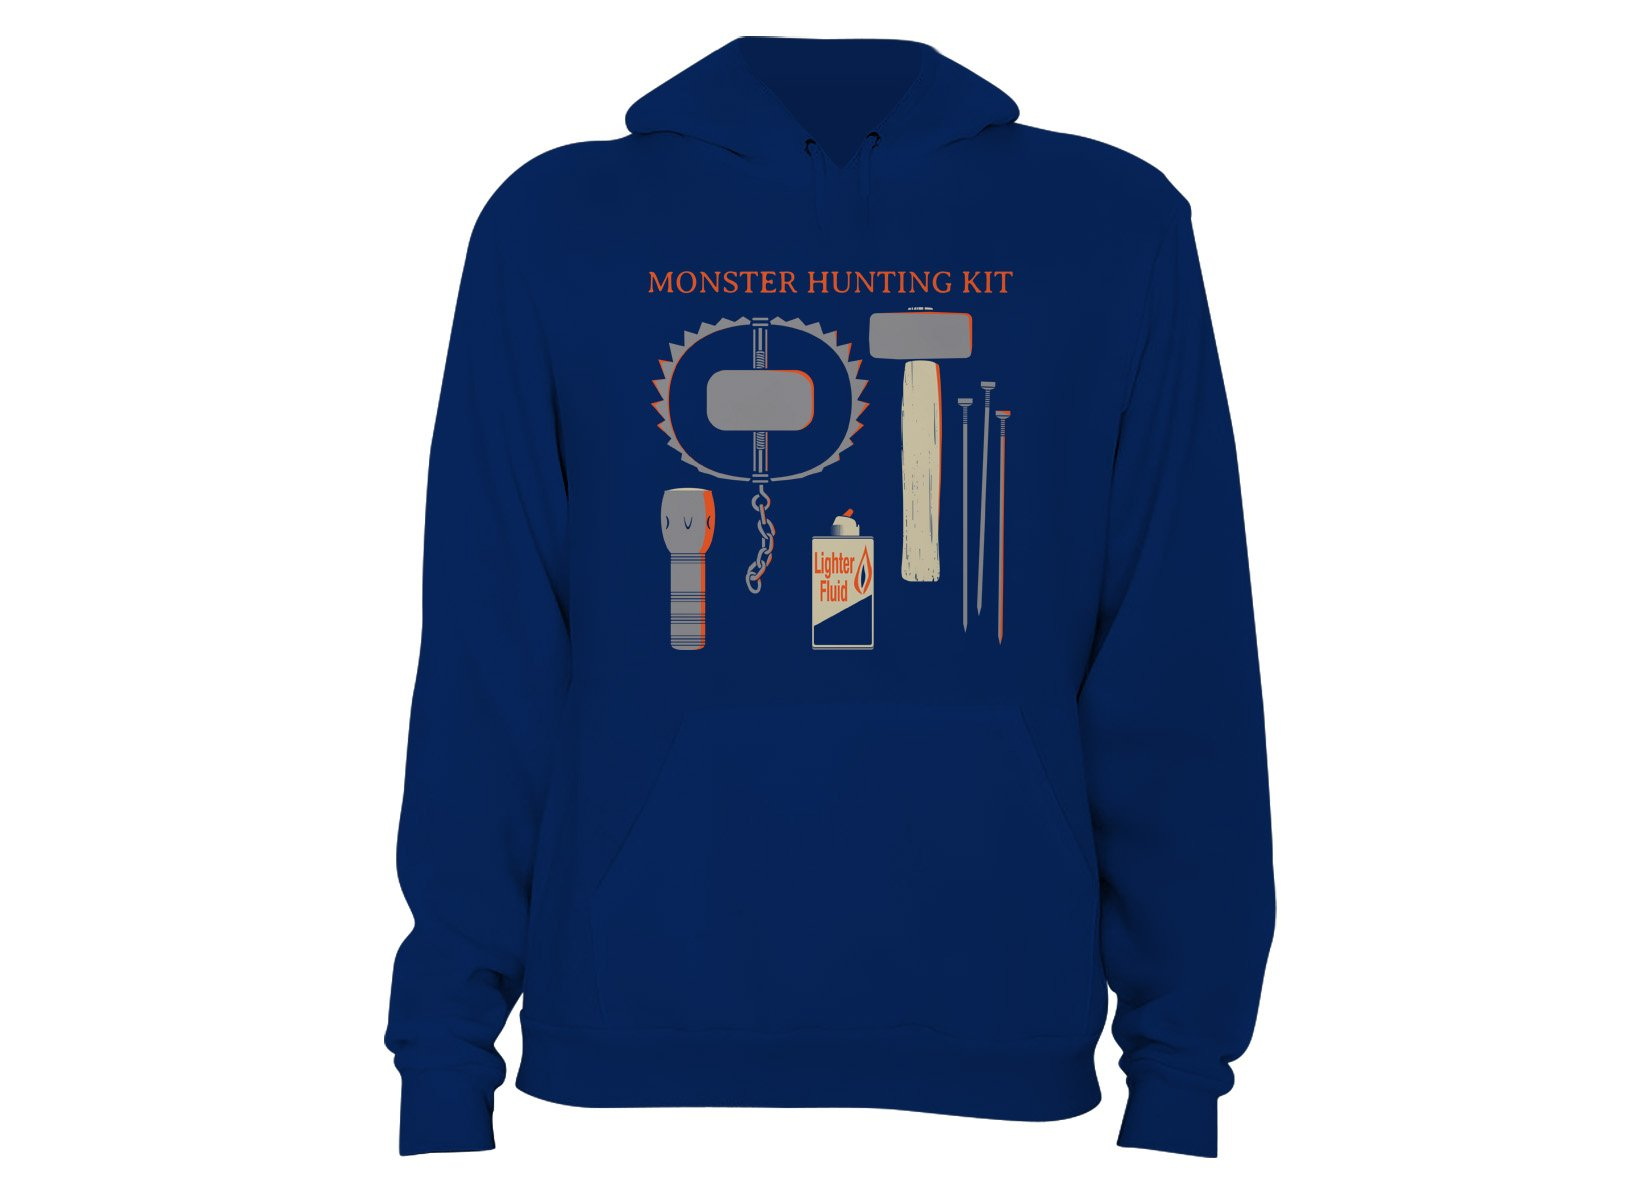 Monster Hunting Kit on Hoodie